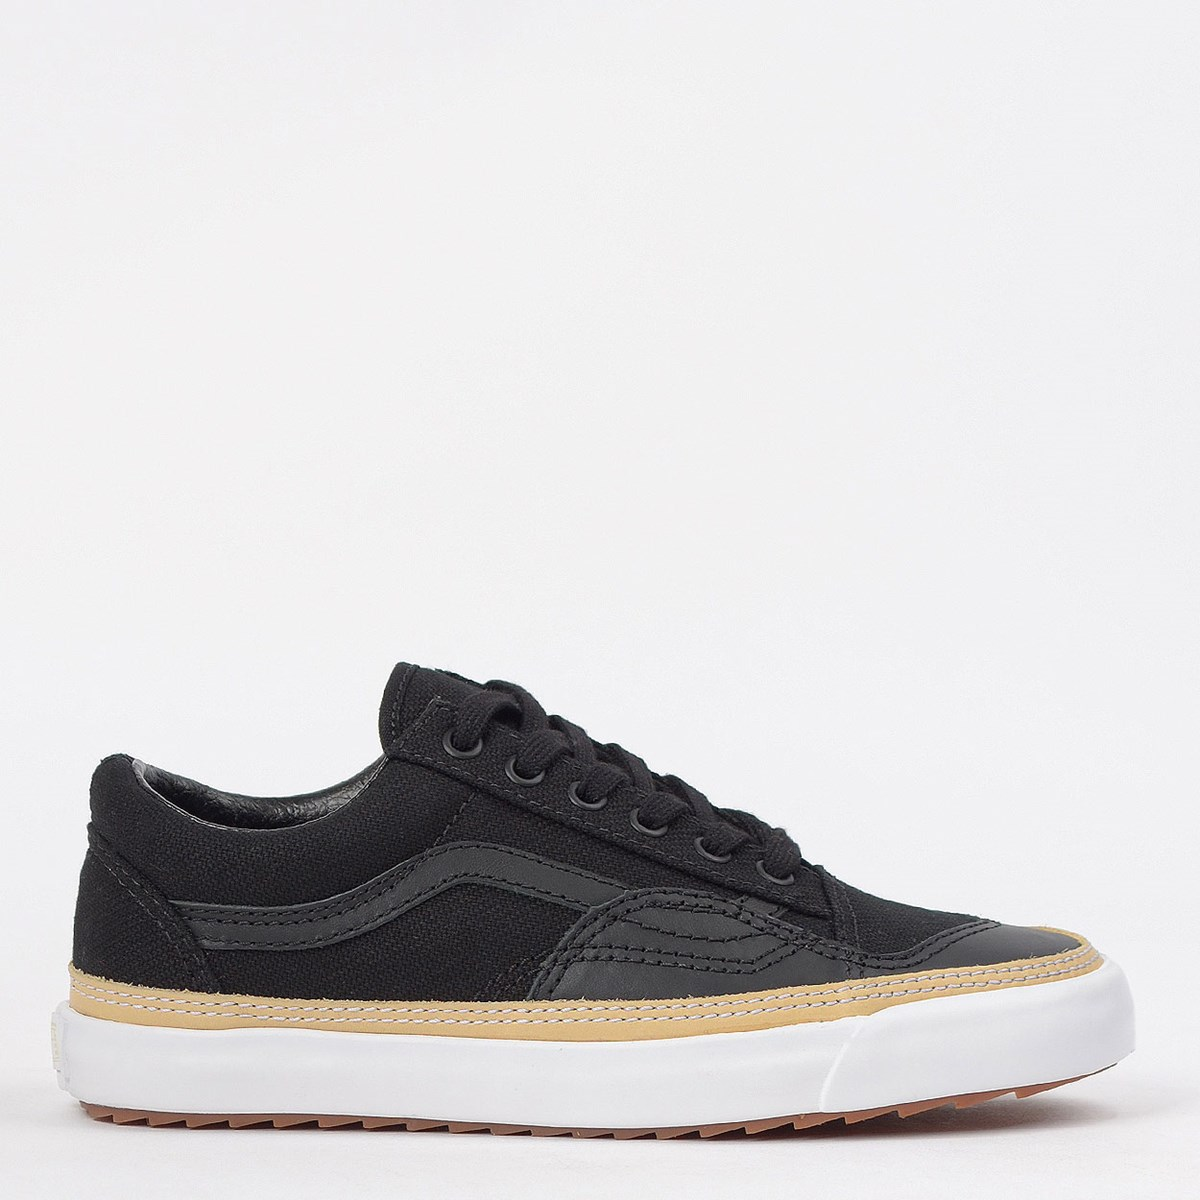 Tênis Vans Old Skool Overply Era Vamp Black White VN0A4U14XFZ